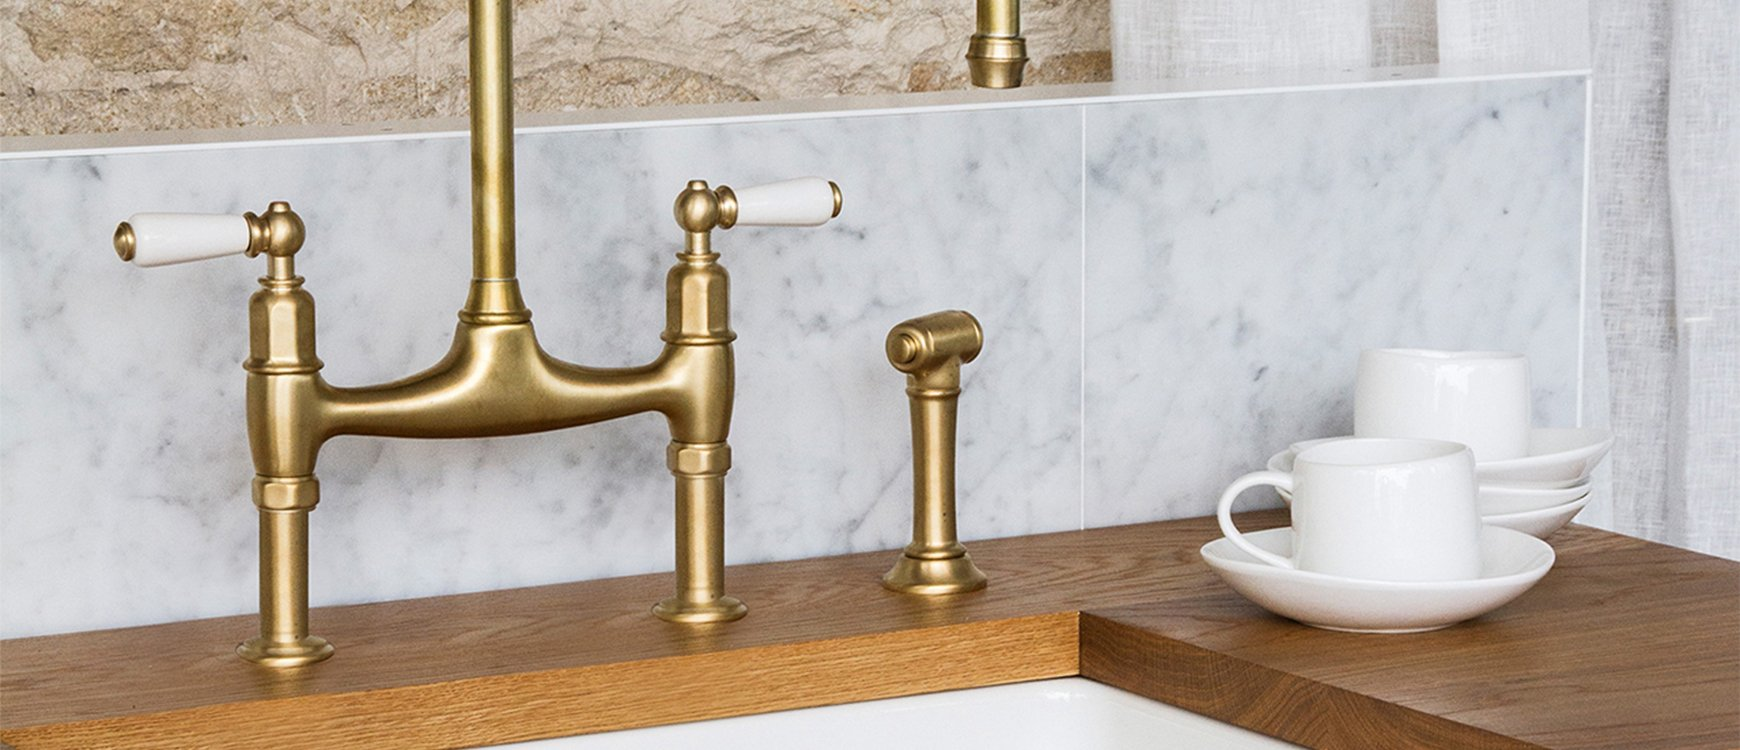 brass the new dimension in interior design: perrin rowe lifestyle